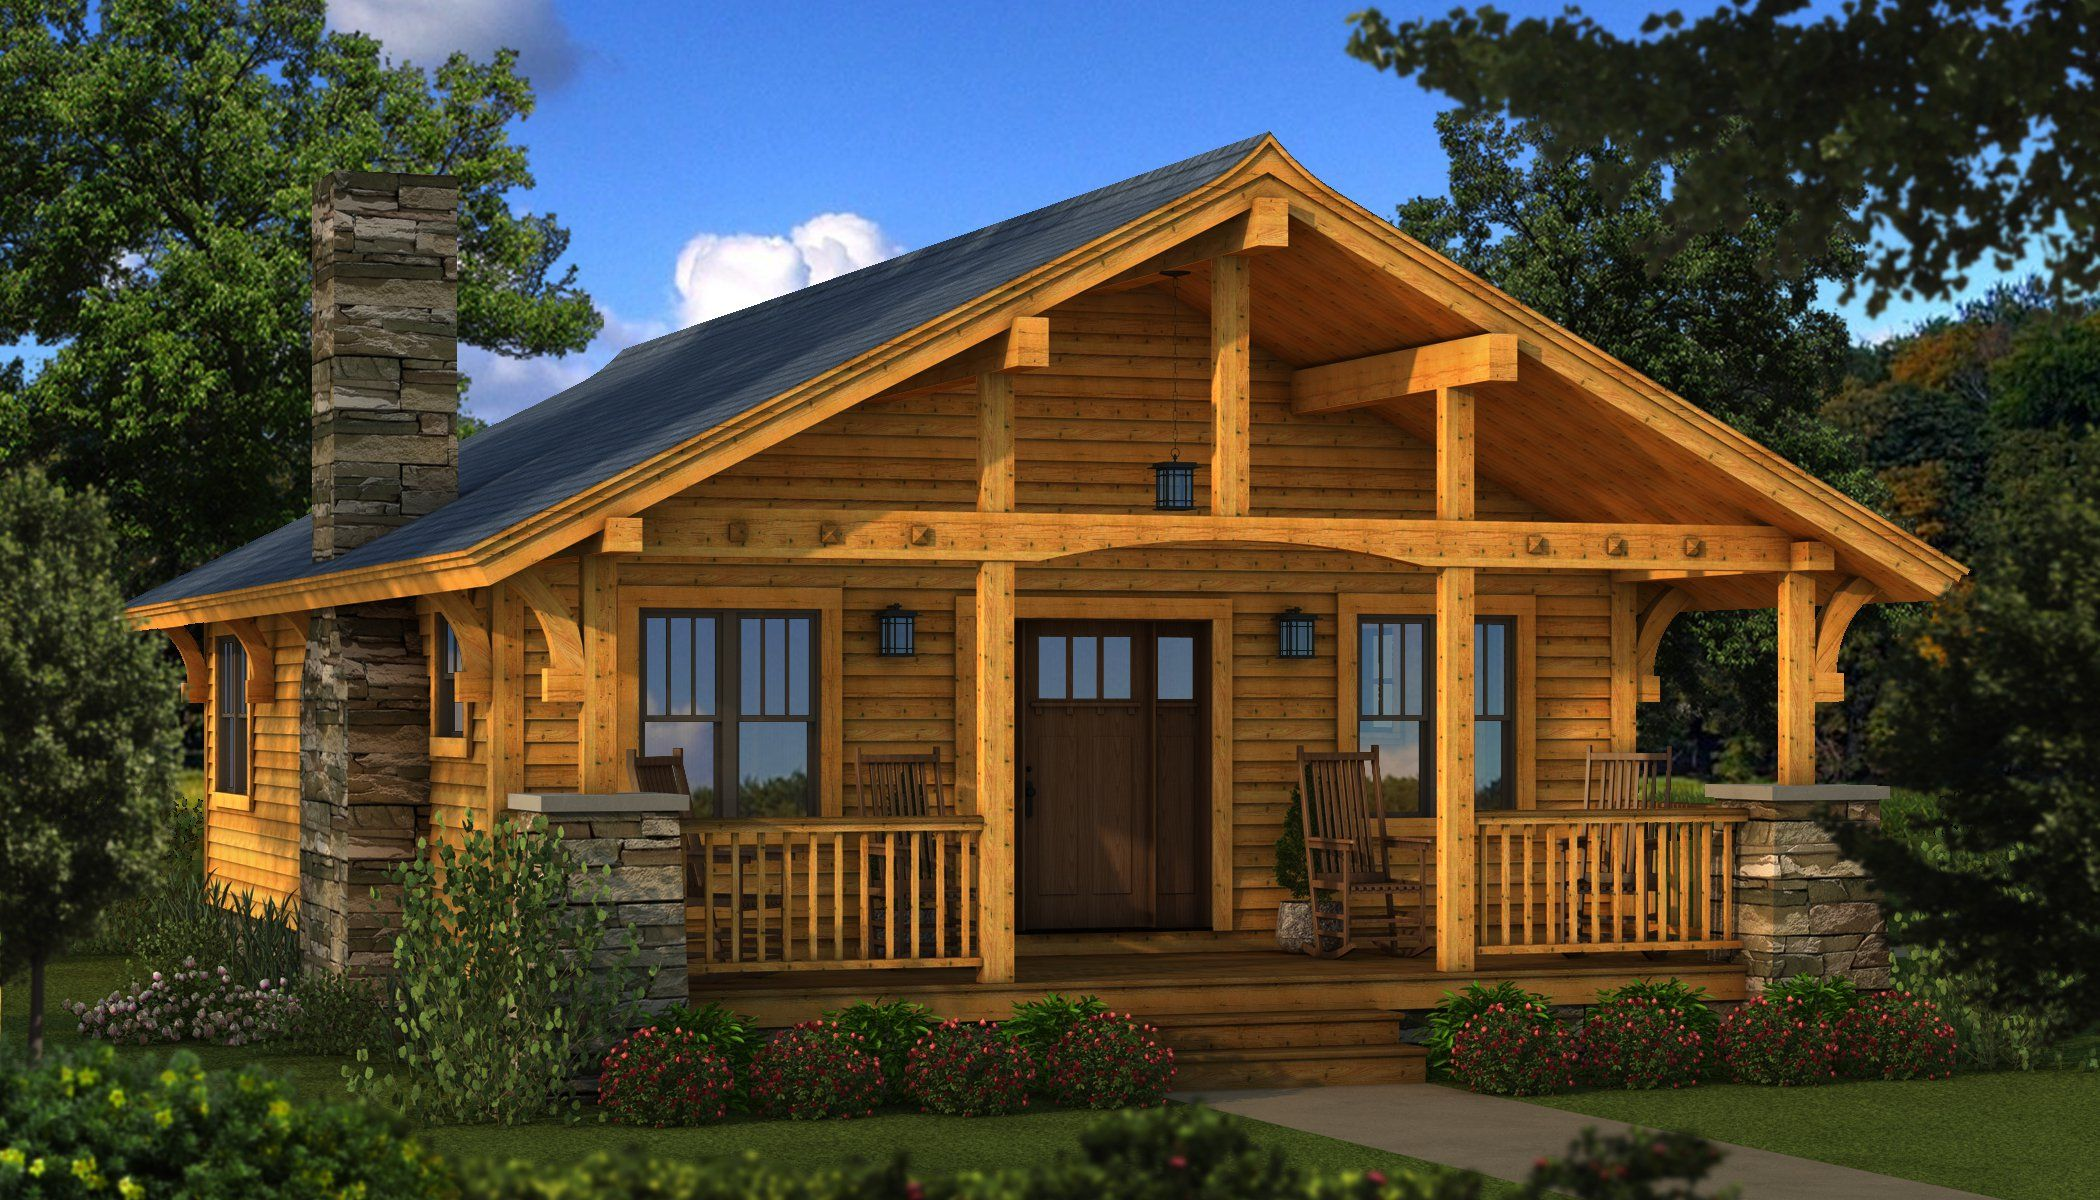 Bungalow 2 log cabin kit plans information for Southland log homes